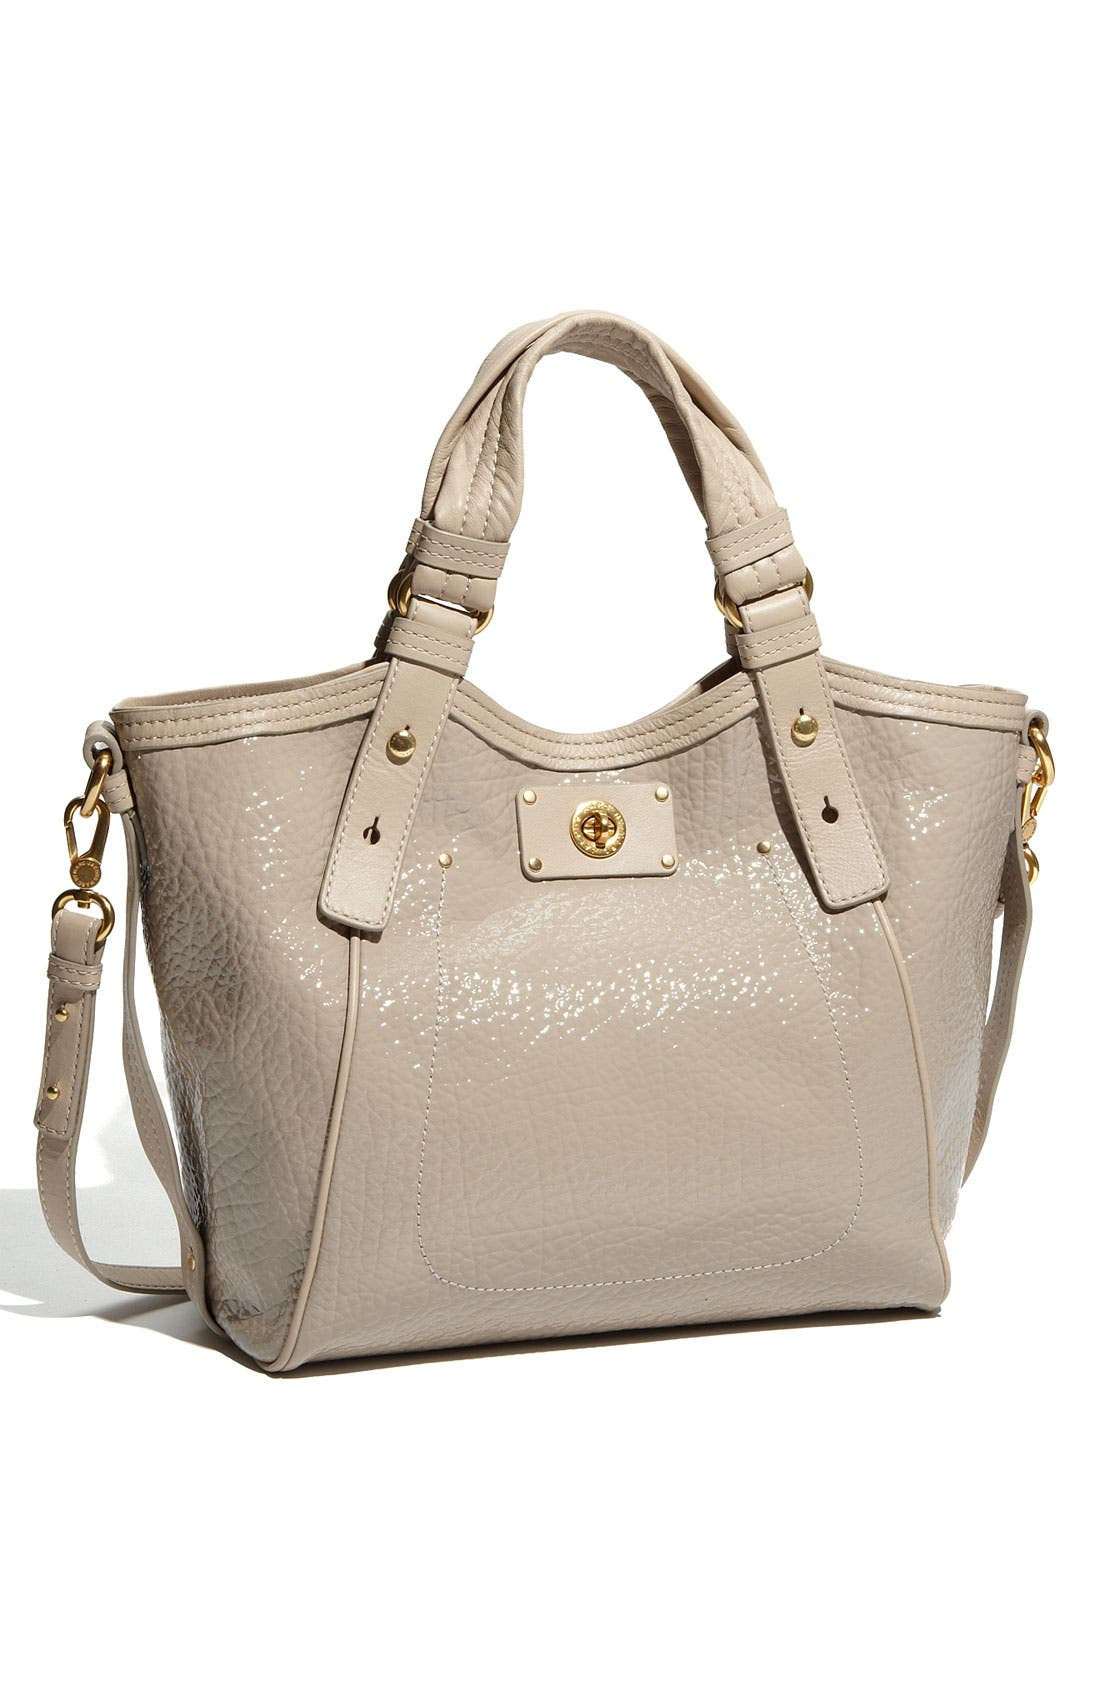 Main Image - MARC BY MARC JACOBS 'Turnlock Shine Fran - Small' Patent Tote